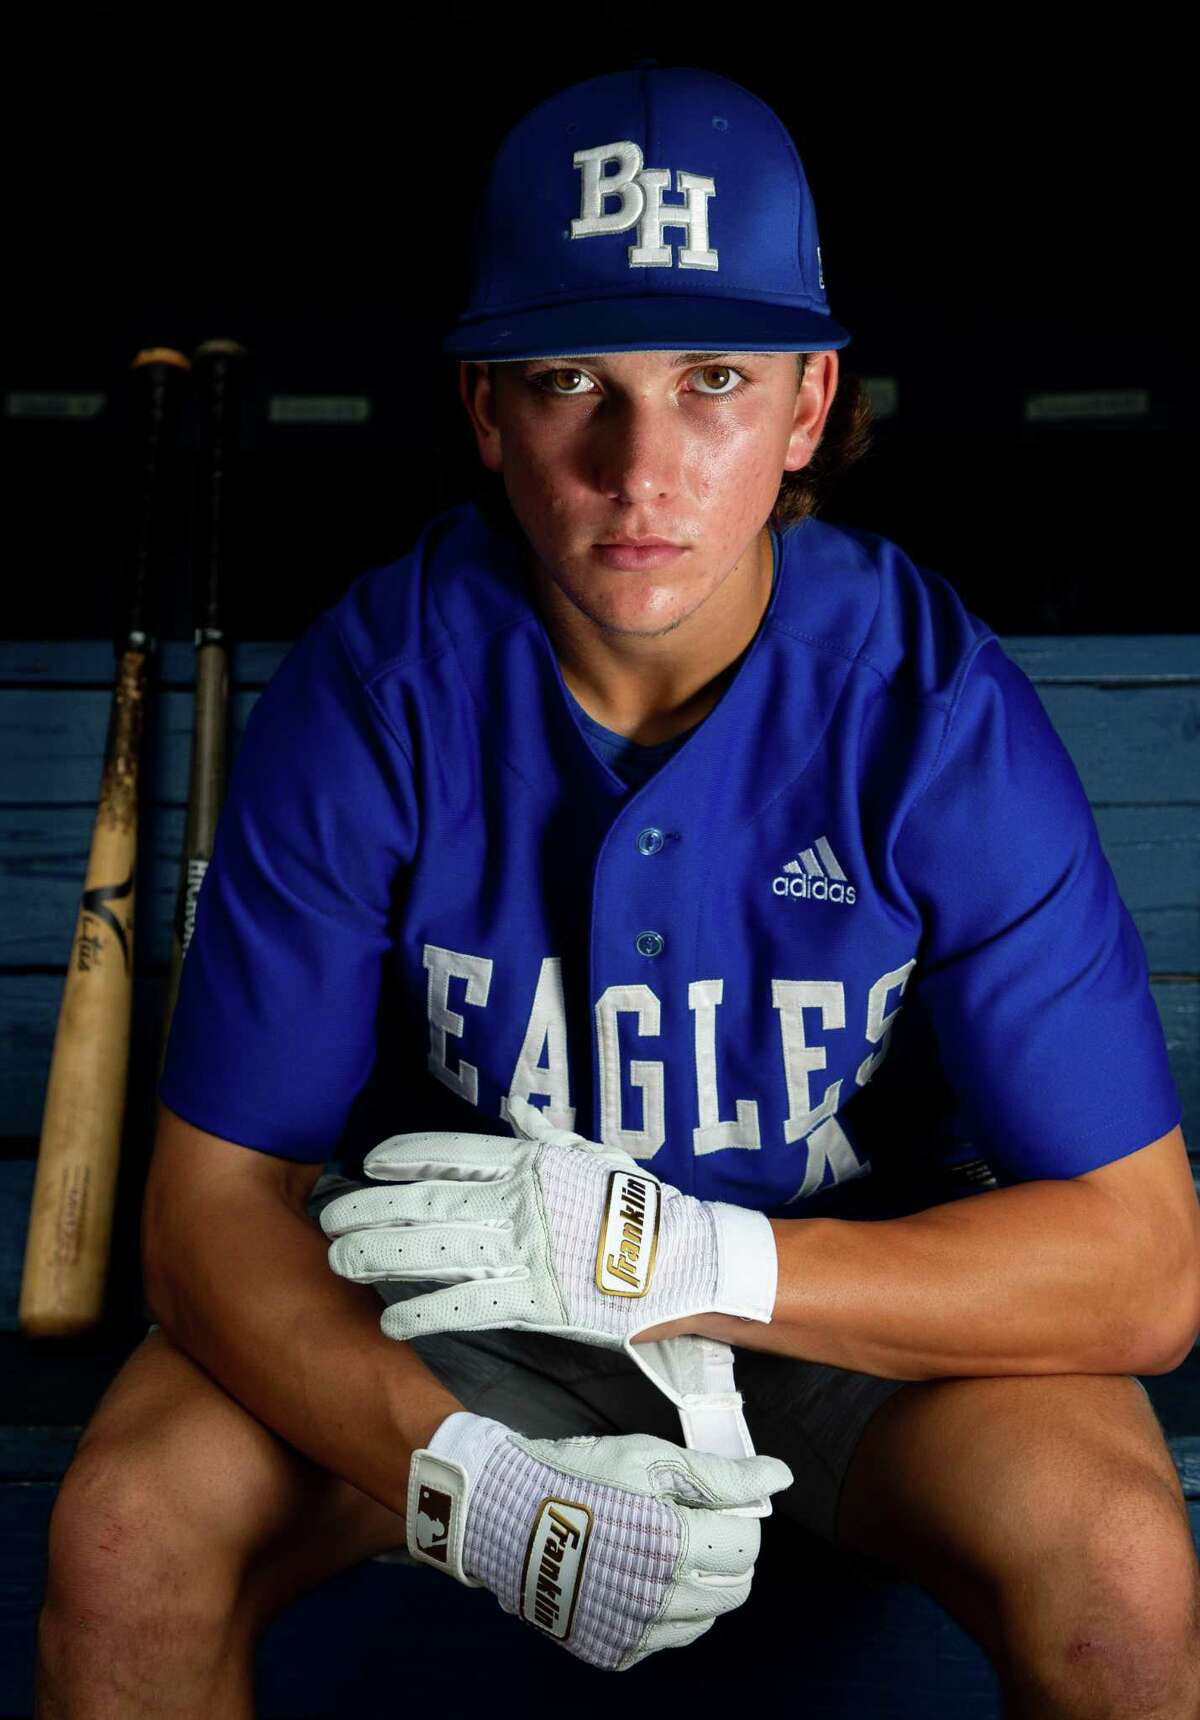 Barbers Hill Eagles senior shortstop Cameron Cauley - who was named All-Greater Houston Baseball Hitter of the Year - had a .445 batting average, with more than 50 stolen bases as the Eagles won the 5A state championship.